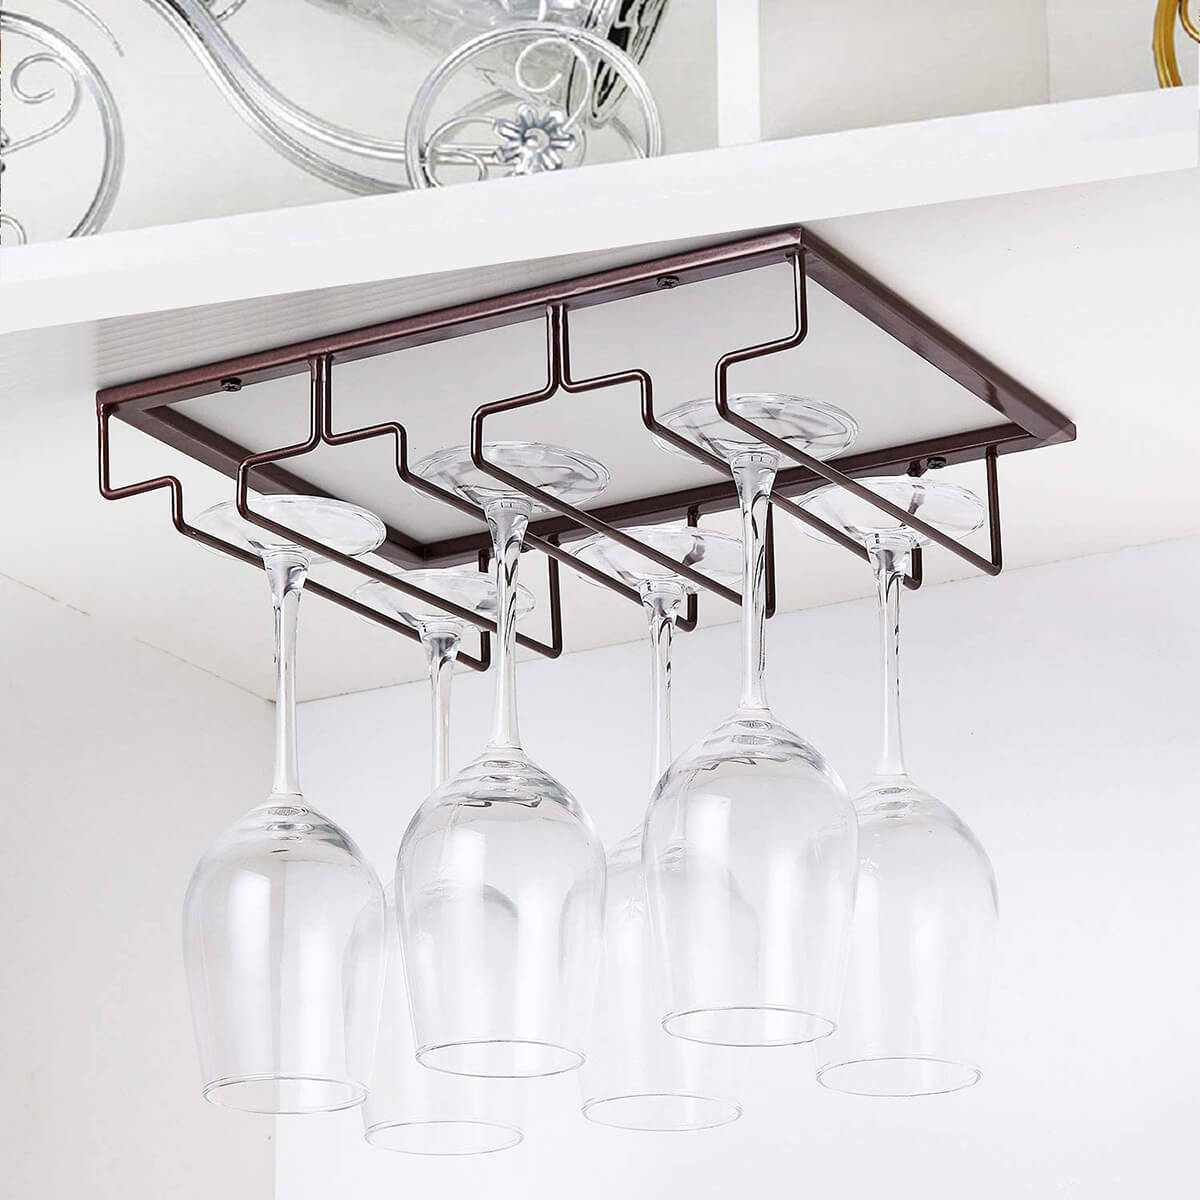 Under the Cabinet Wine Glass Storage